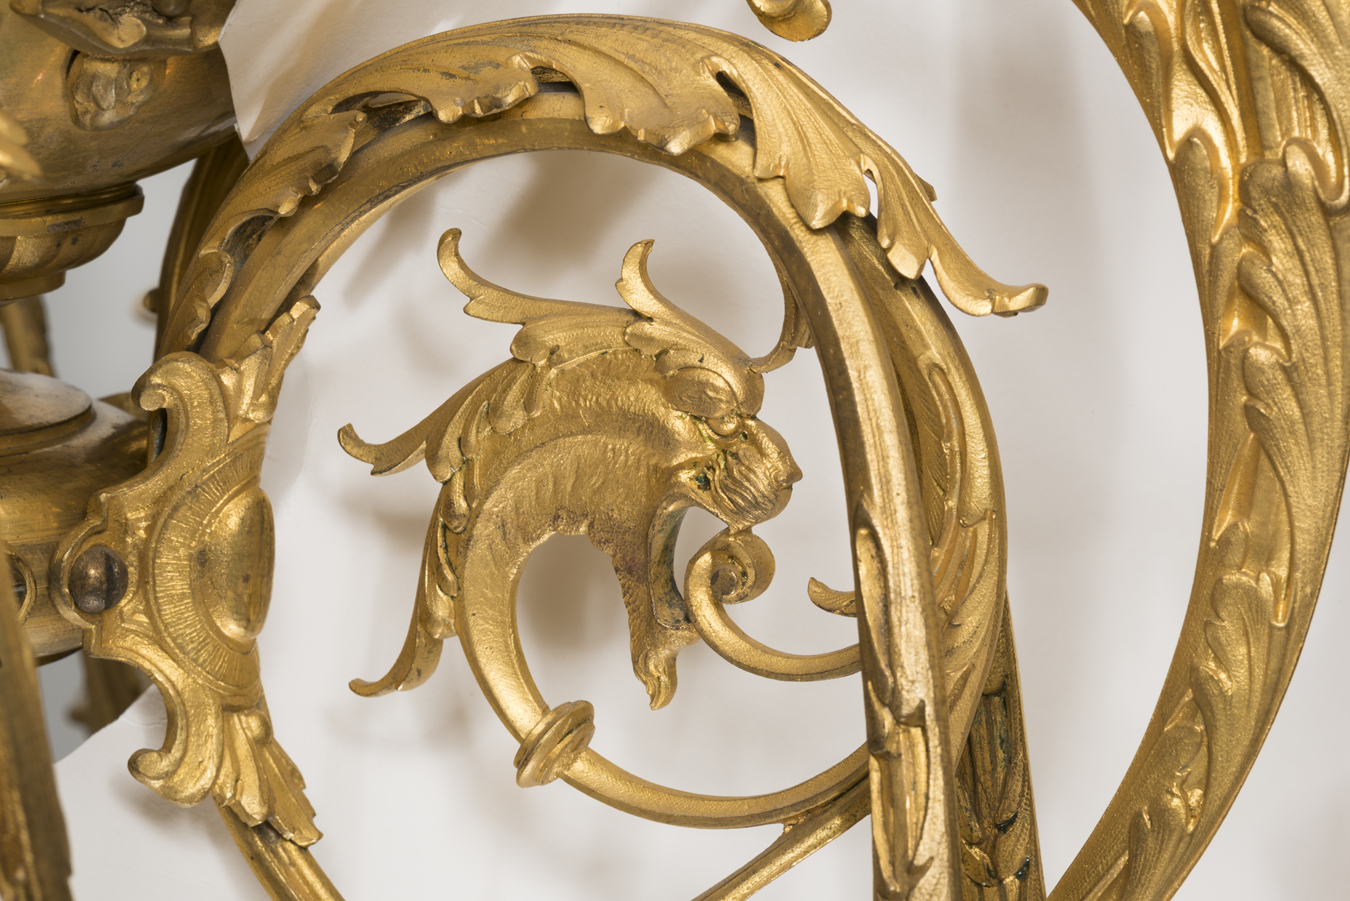 Fragment of chandelier, 1887–1911, National Museum of Lithuania, IM-5102. Photo by Kęstutis Stoškus, 2019